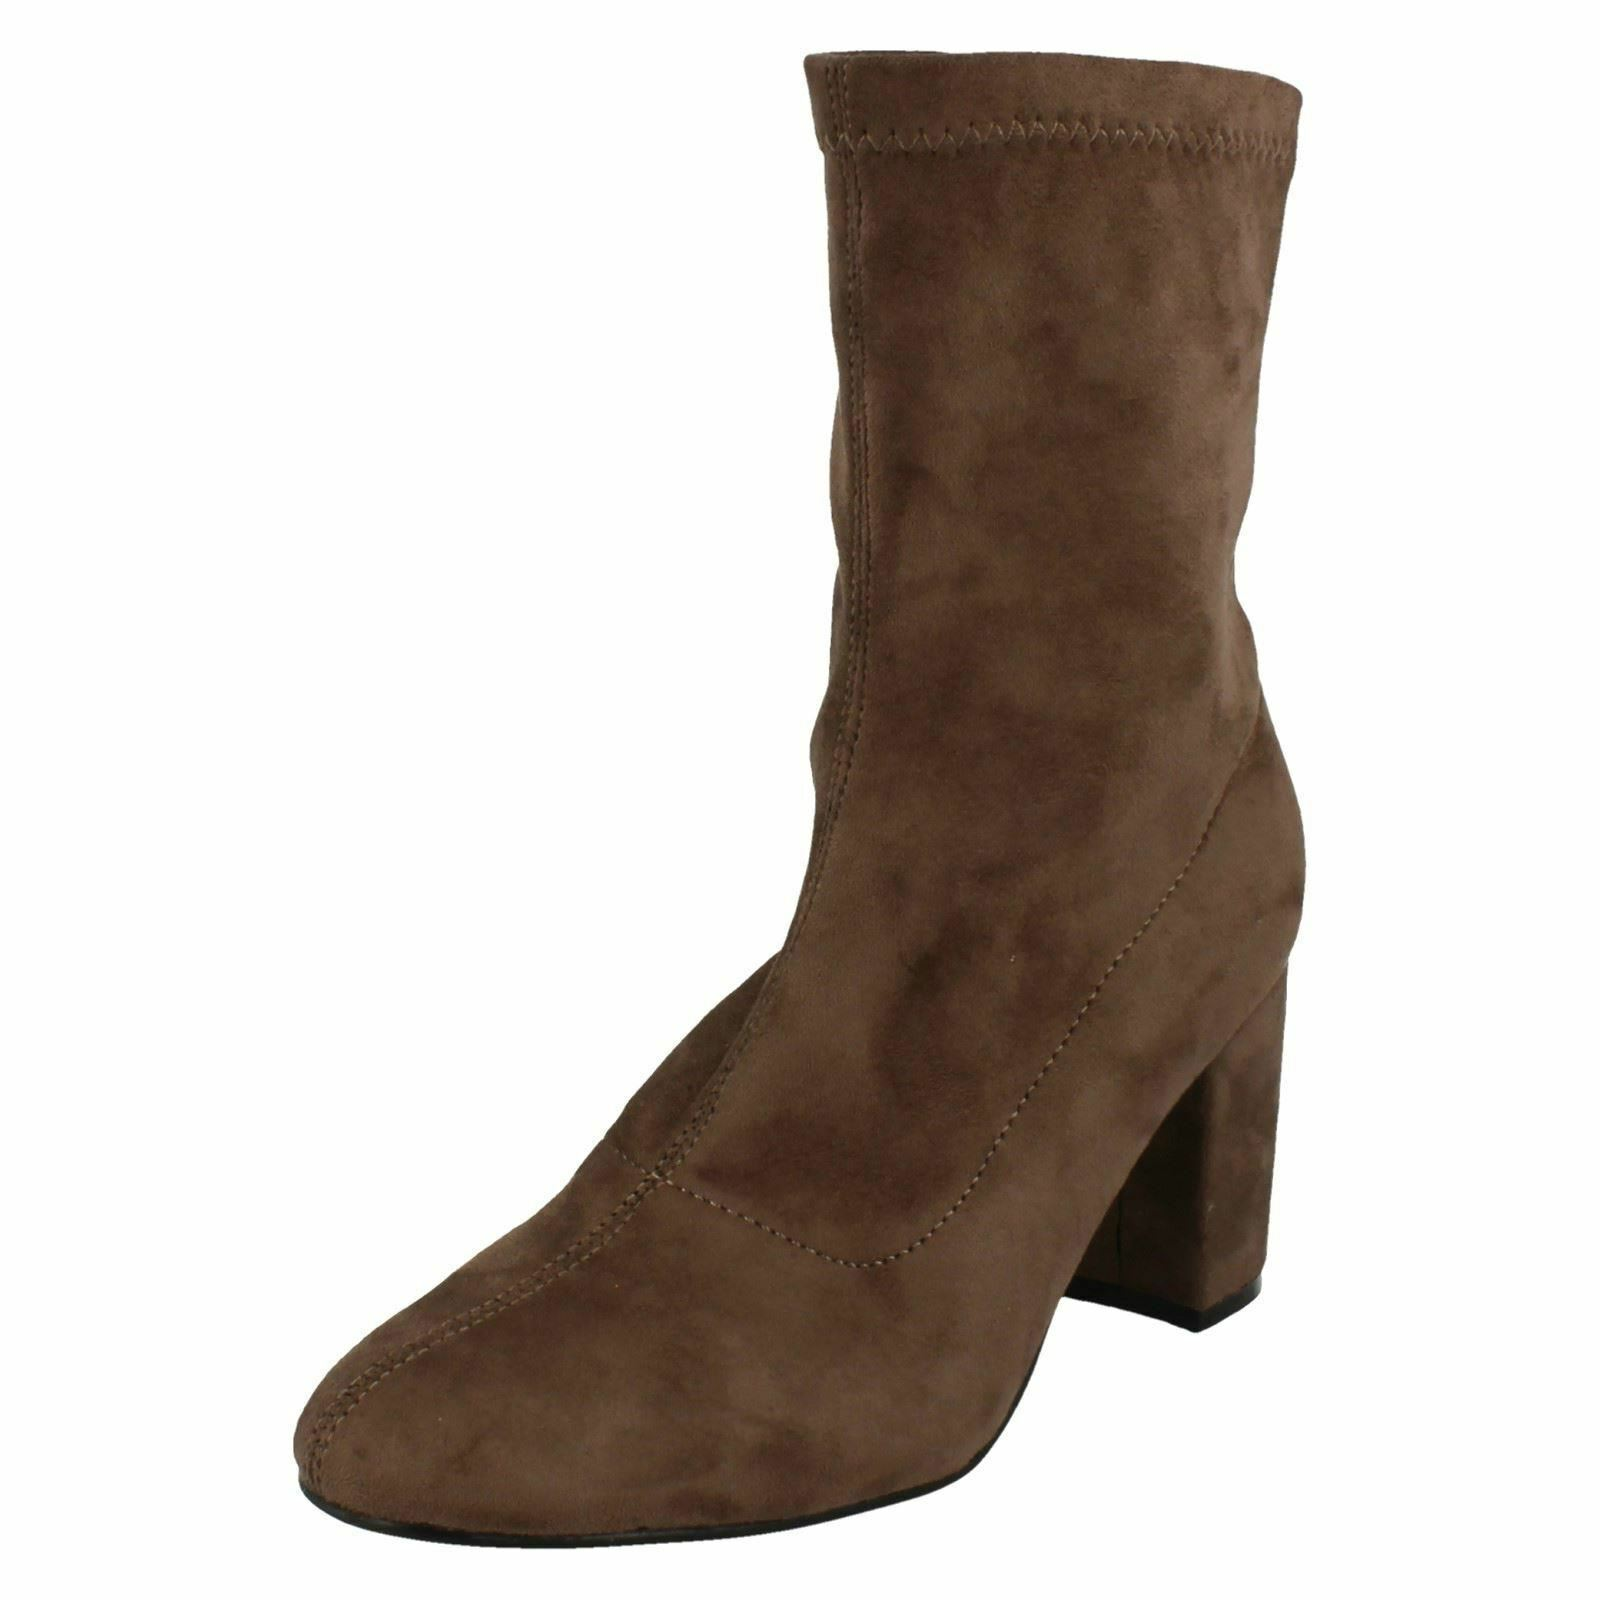 LADIES ANNE MICHELLE MID BLOCK HEEL PULL ON ANKLE HIGH STRETCHY BOOTS F50681